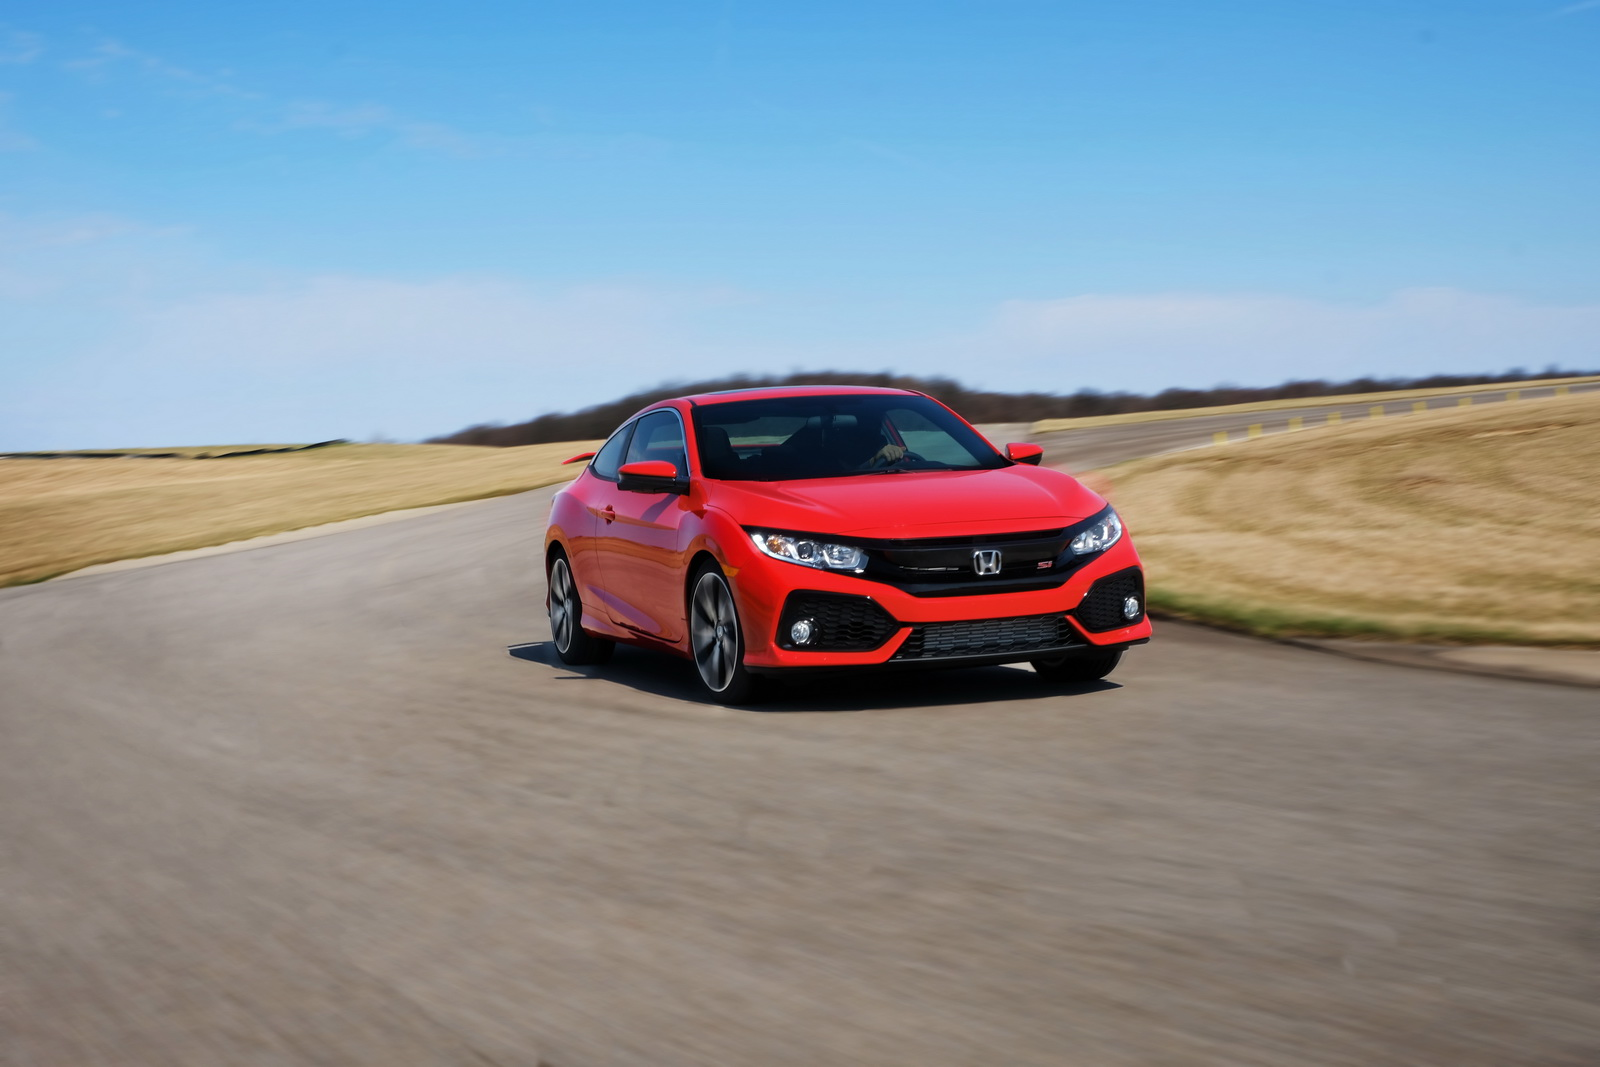 honda s turbocharged civic si goes on sale starting from 23 900 carscoops. Black Bedroom Furniture Sets. Home Design Ideas